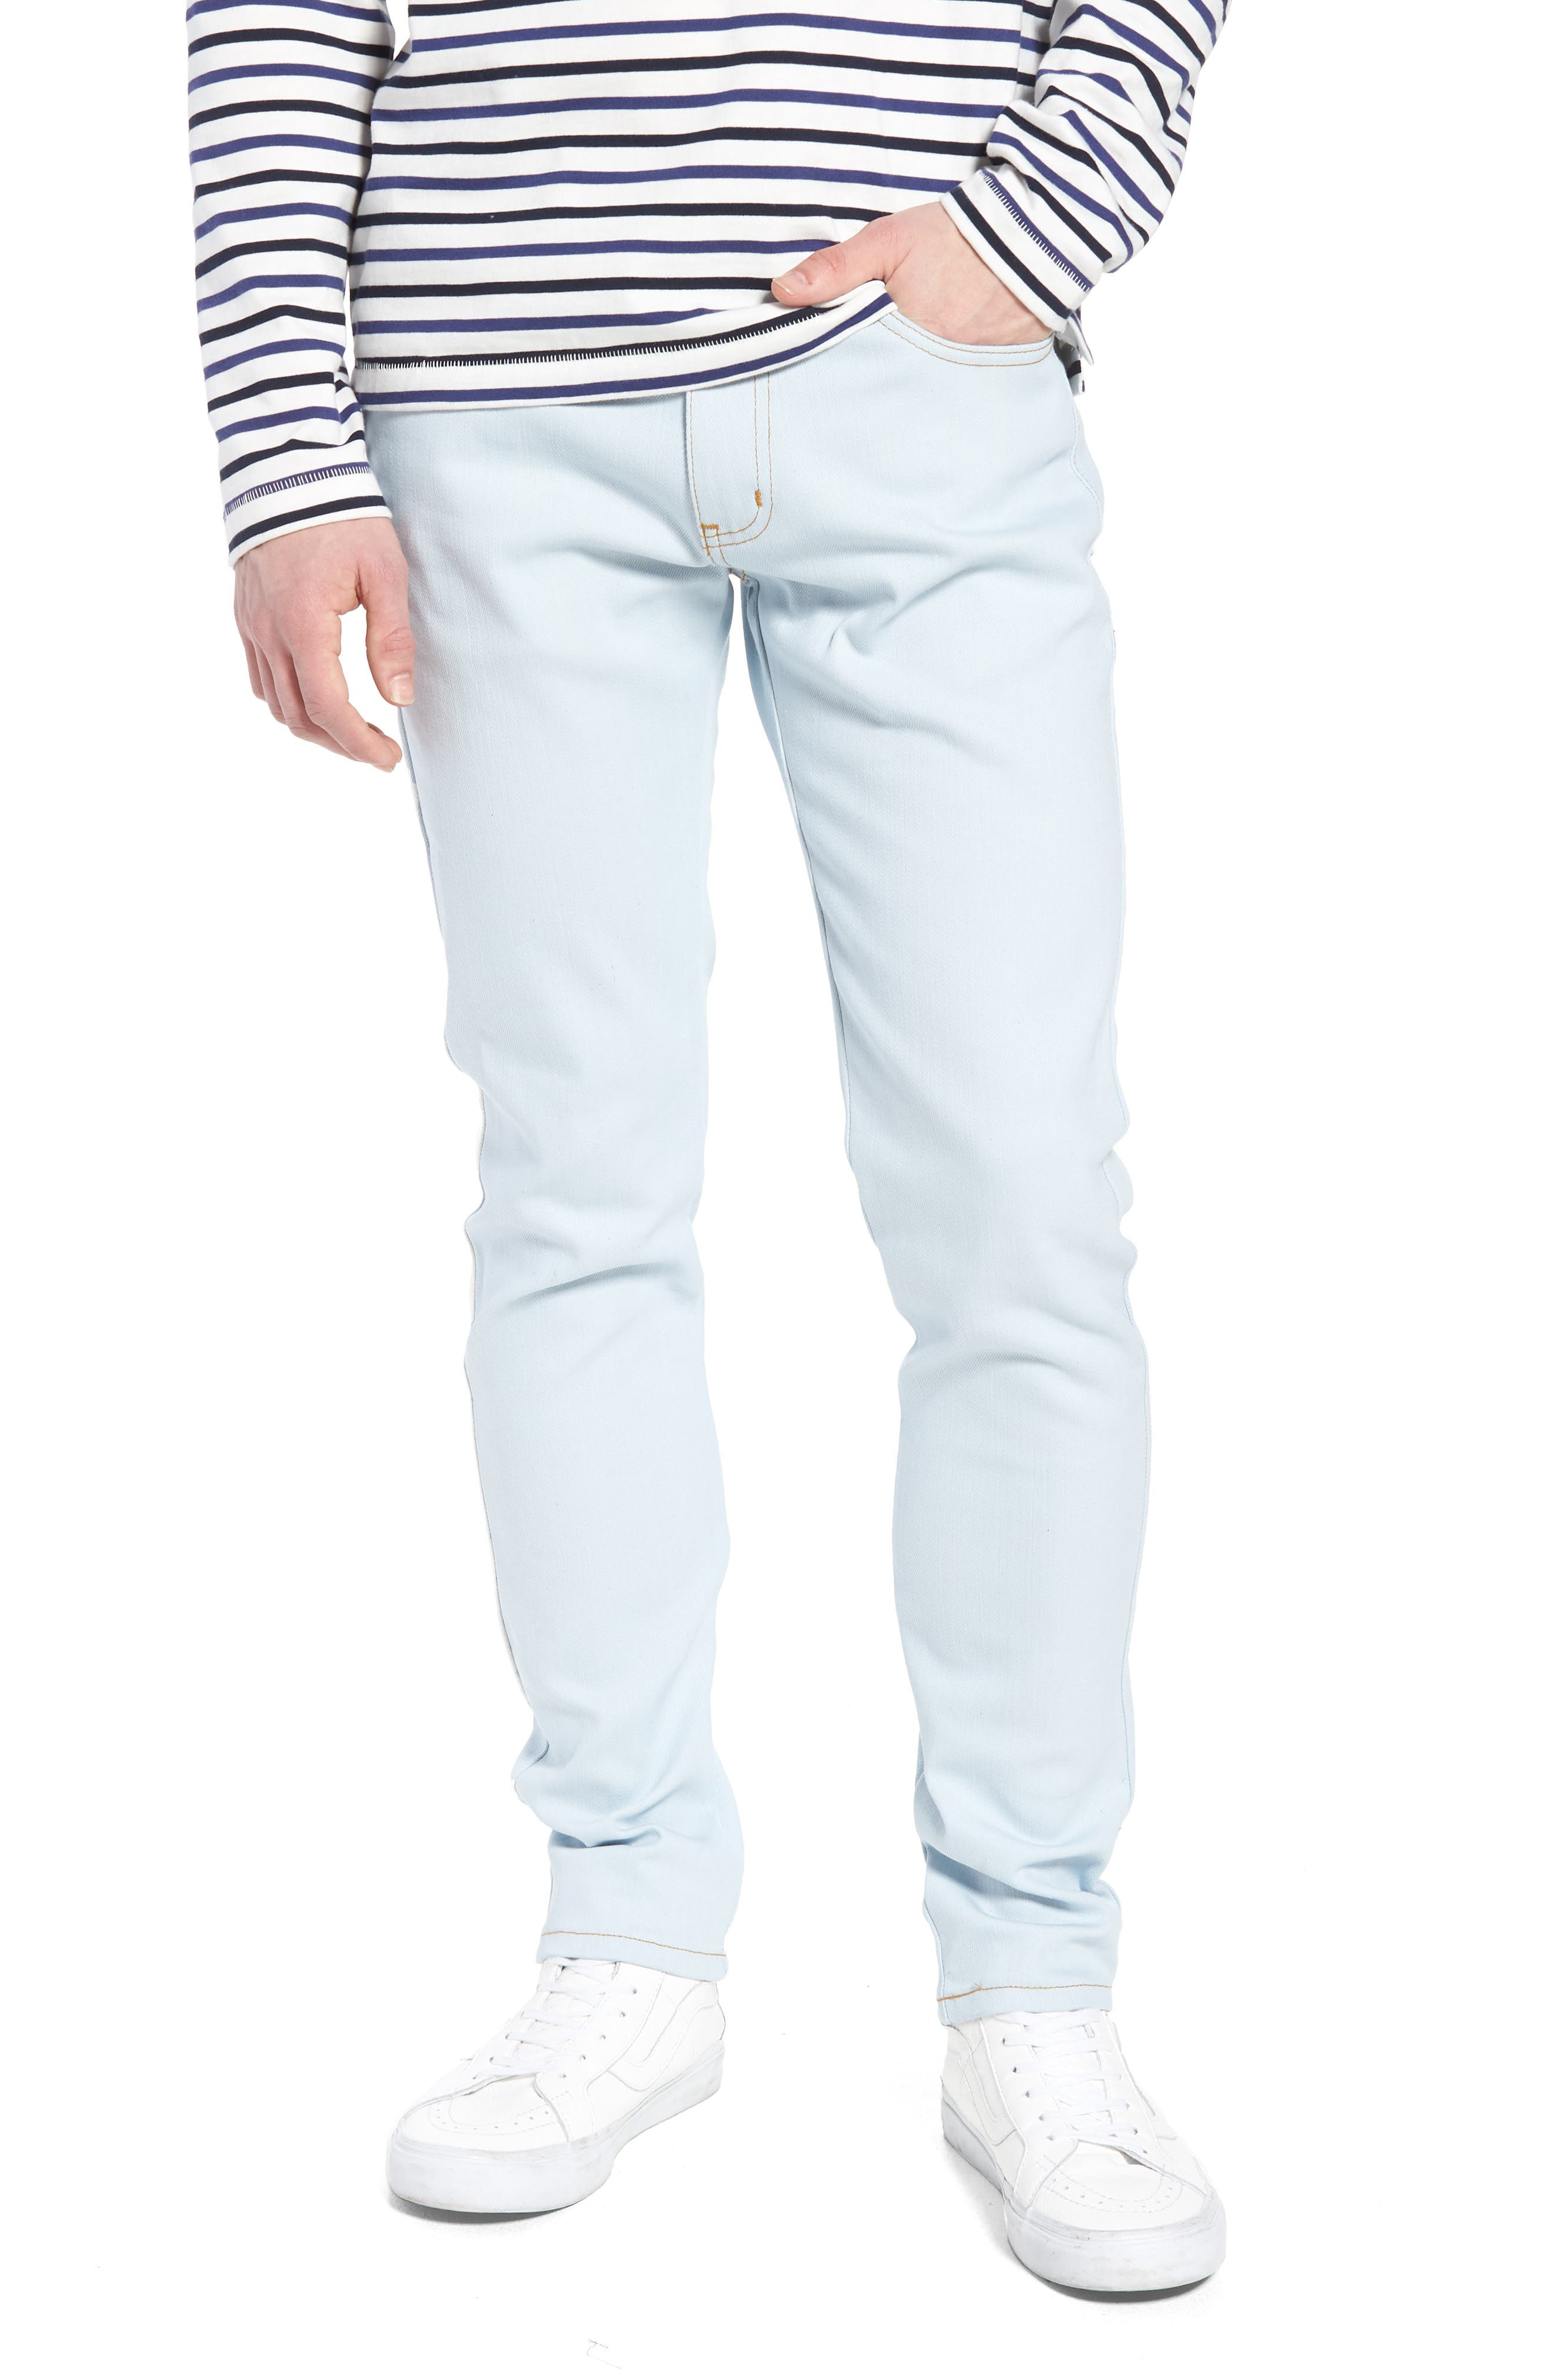 Naked & Famous Super Skinny Guy Skinny Fit Jeans,                         Main,                         color, Powder Blue